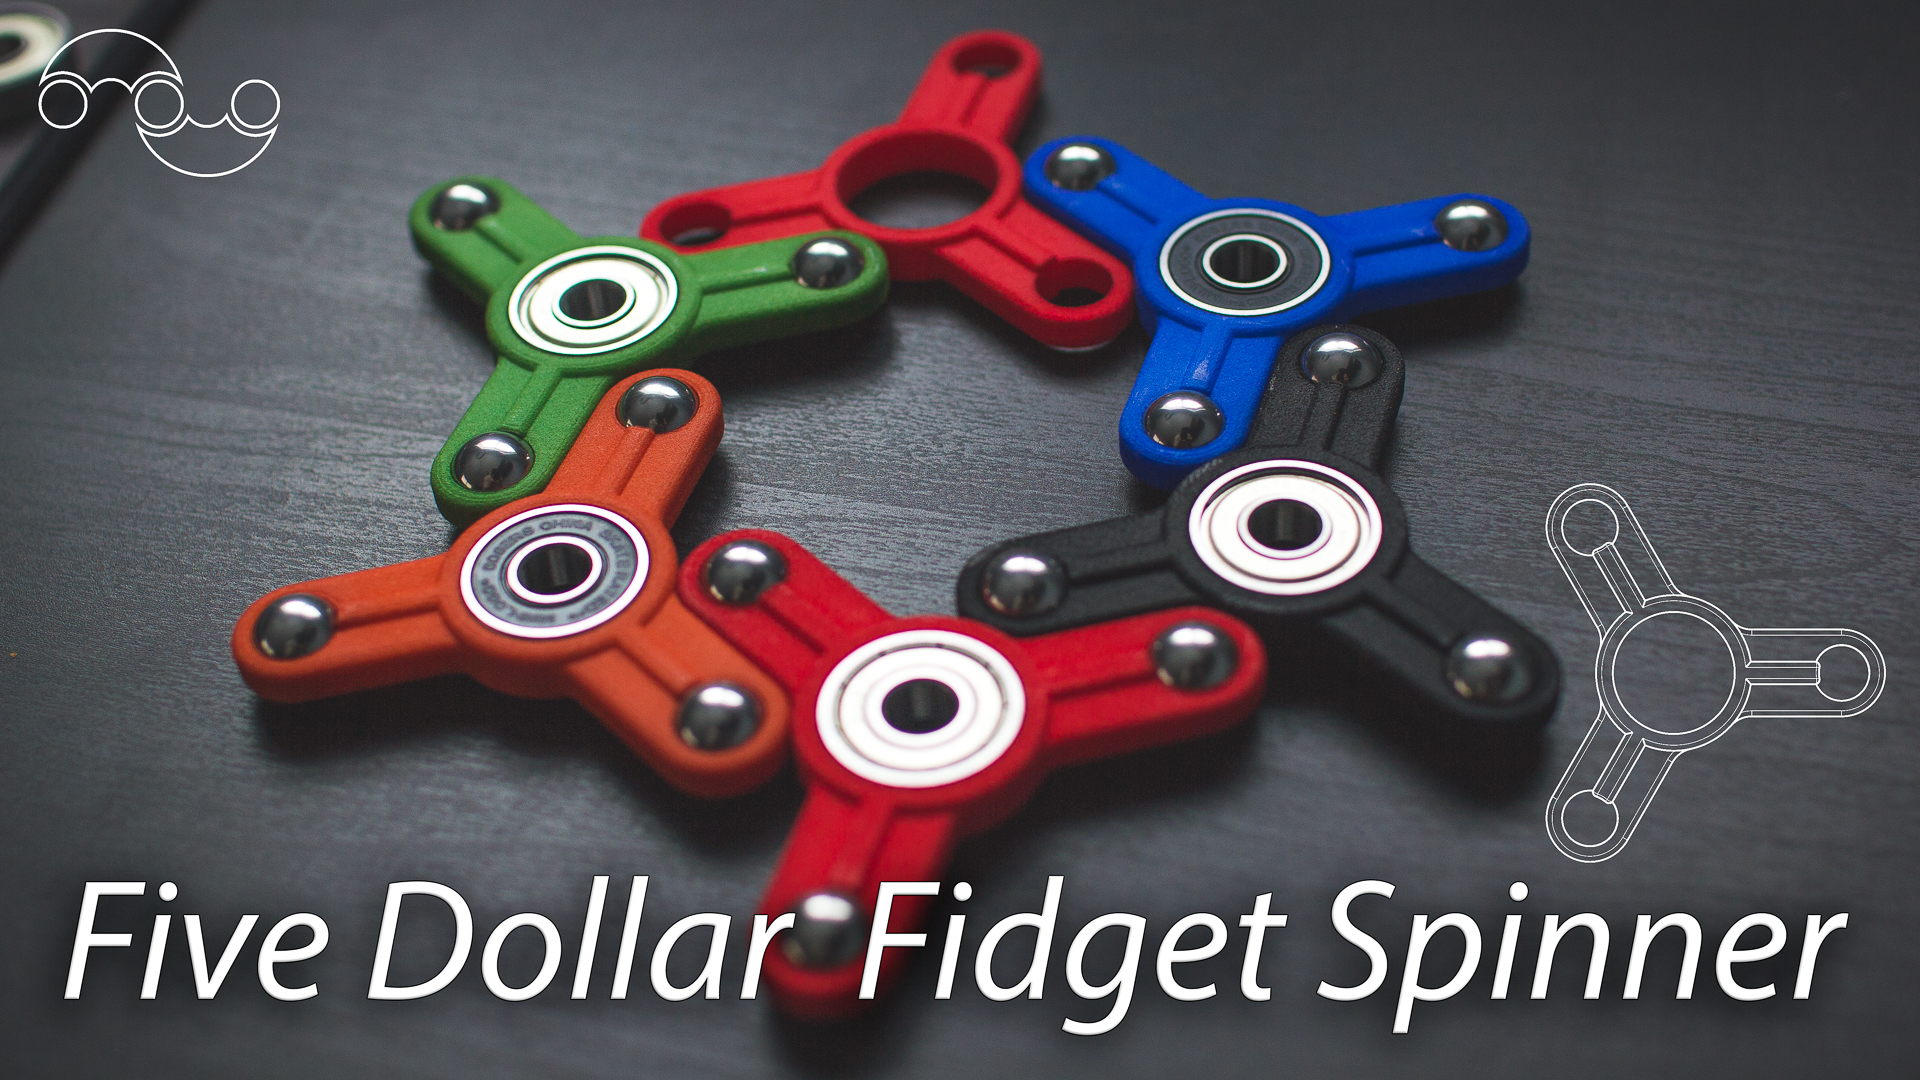 Five Dollar Fidget Spinner